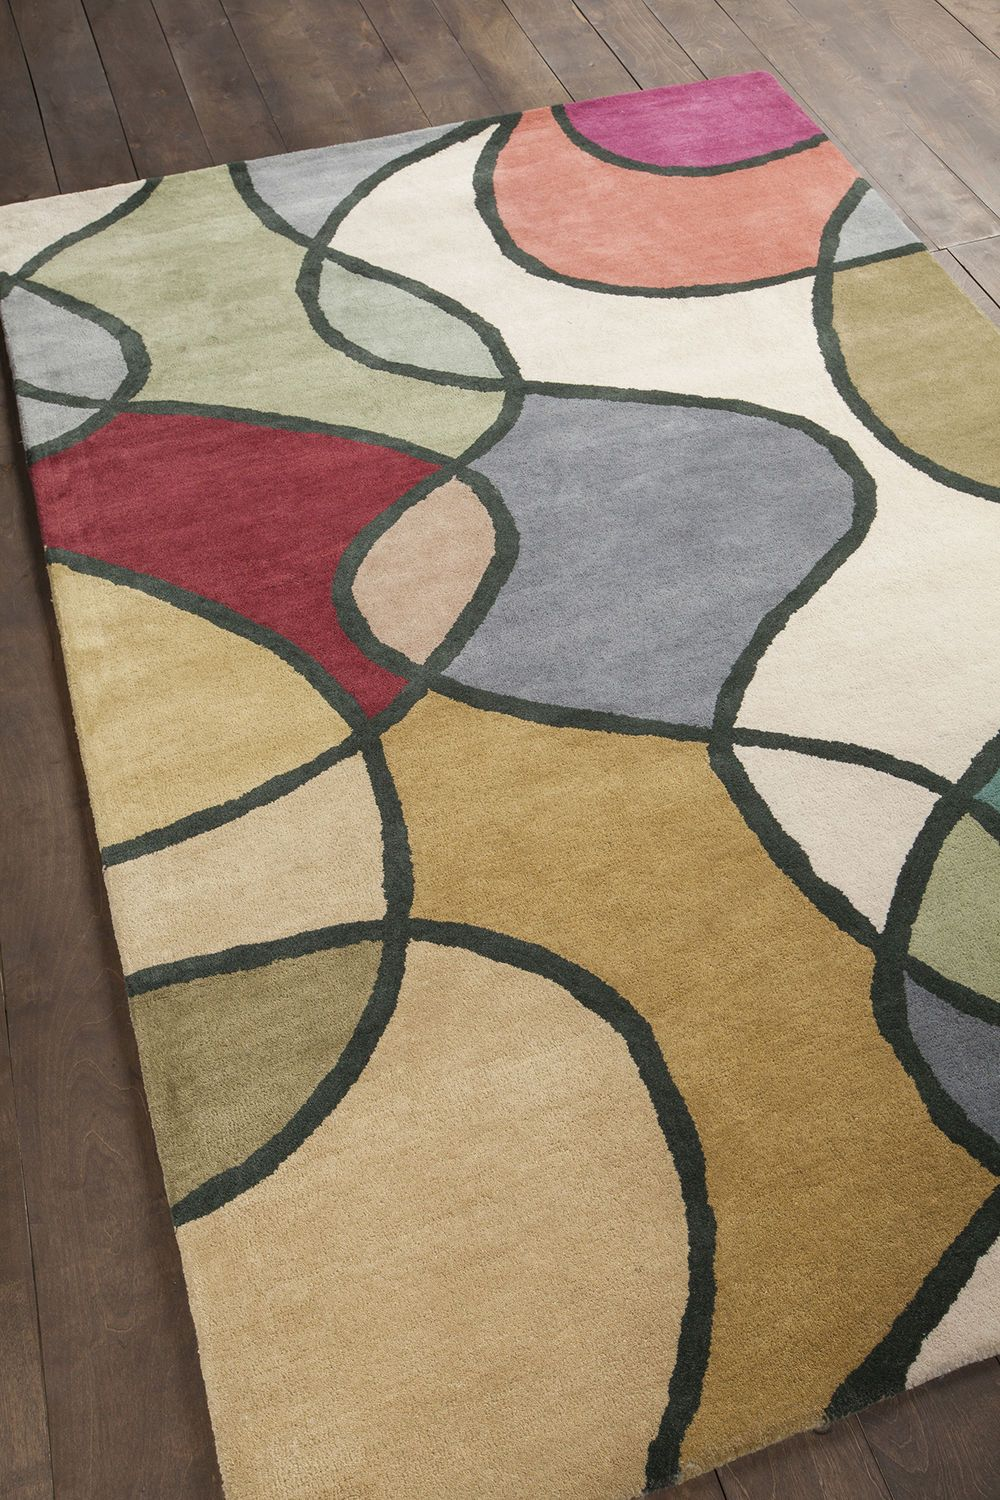 Pin By Leah Schenk On Rugs Rugs Colorful Rugs Yellow Area Rugs